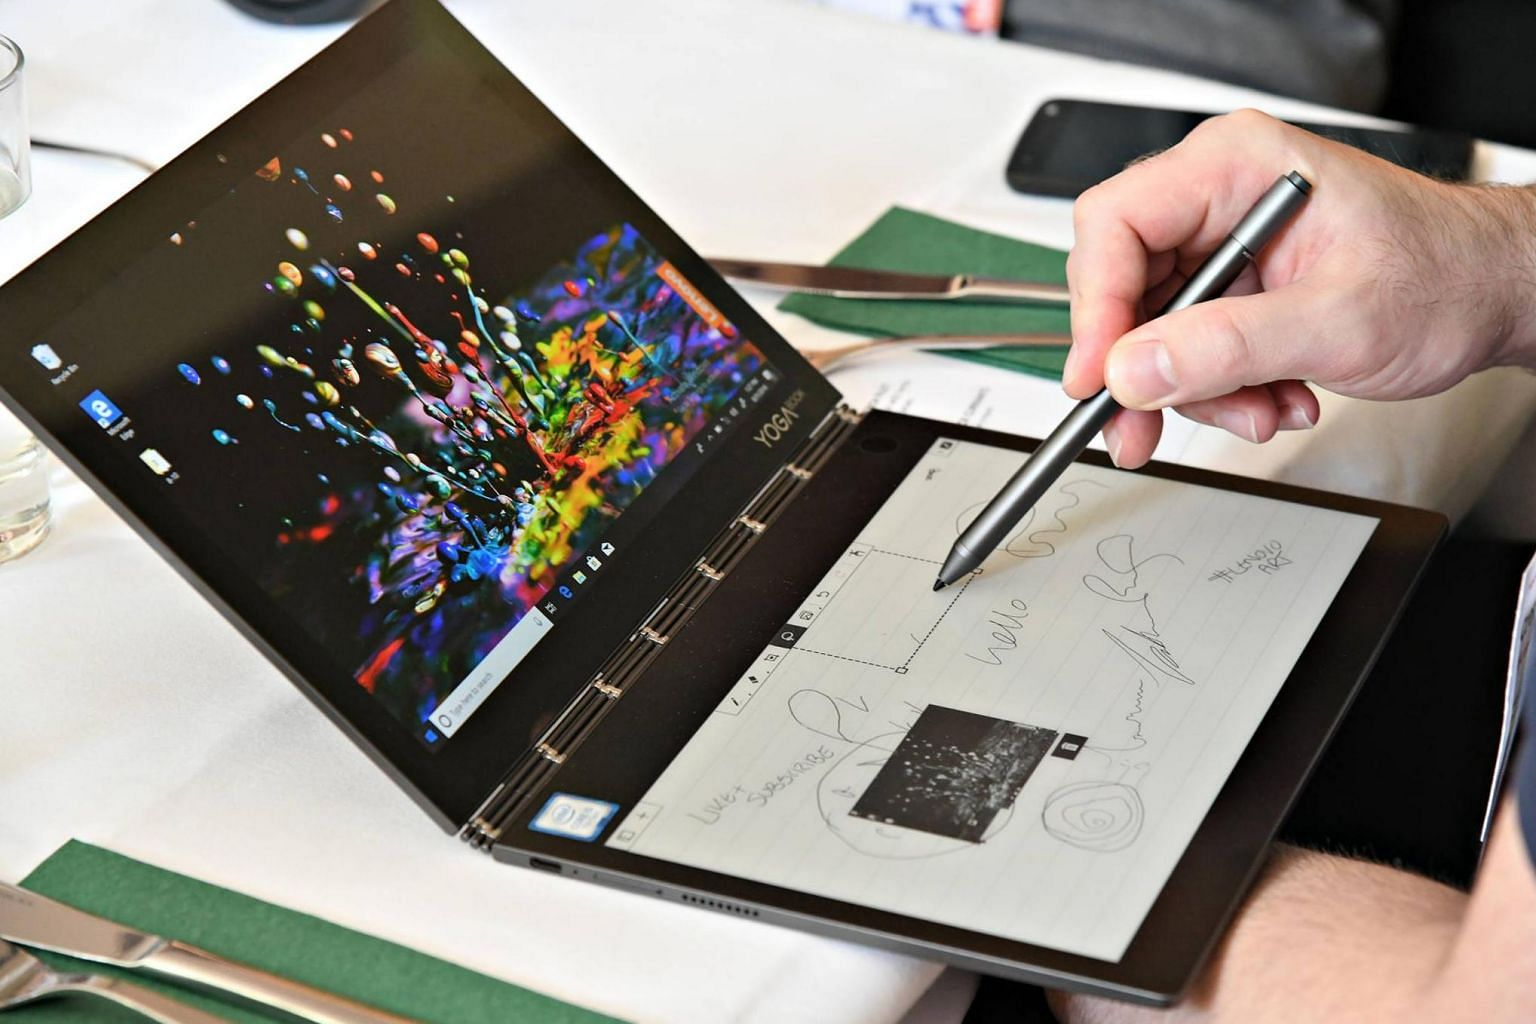 Tech Review Lenovo Yoga Book C930 Not Ready For Prime Time Pcs News Top Stories The Straits Times